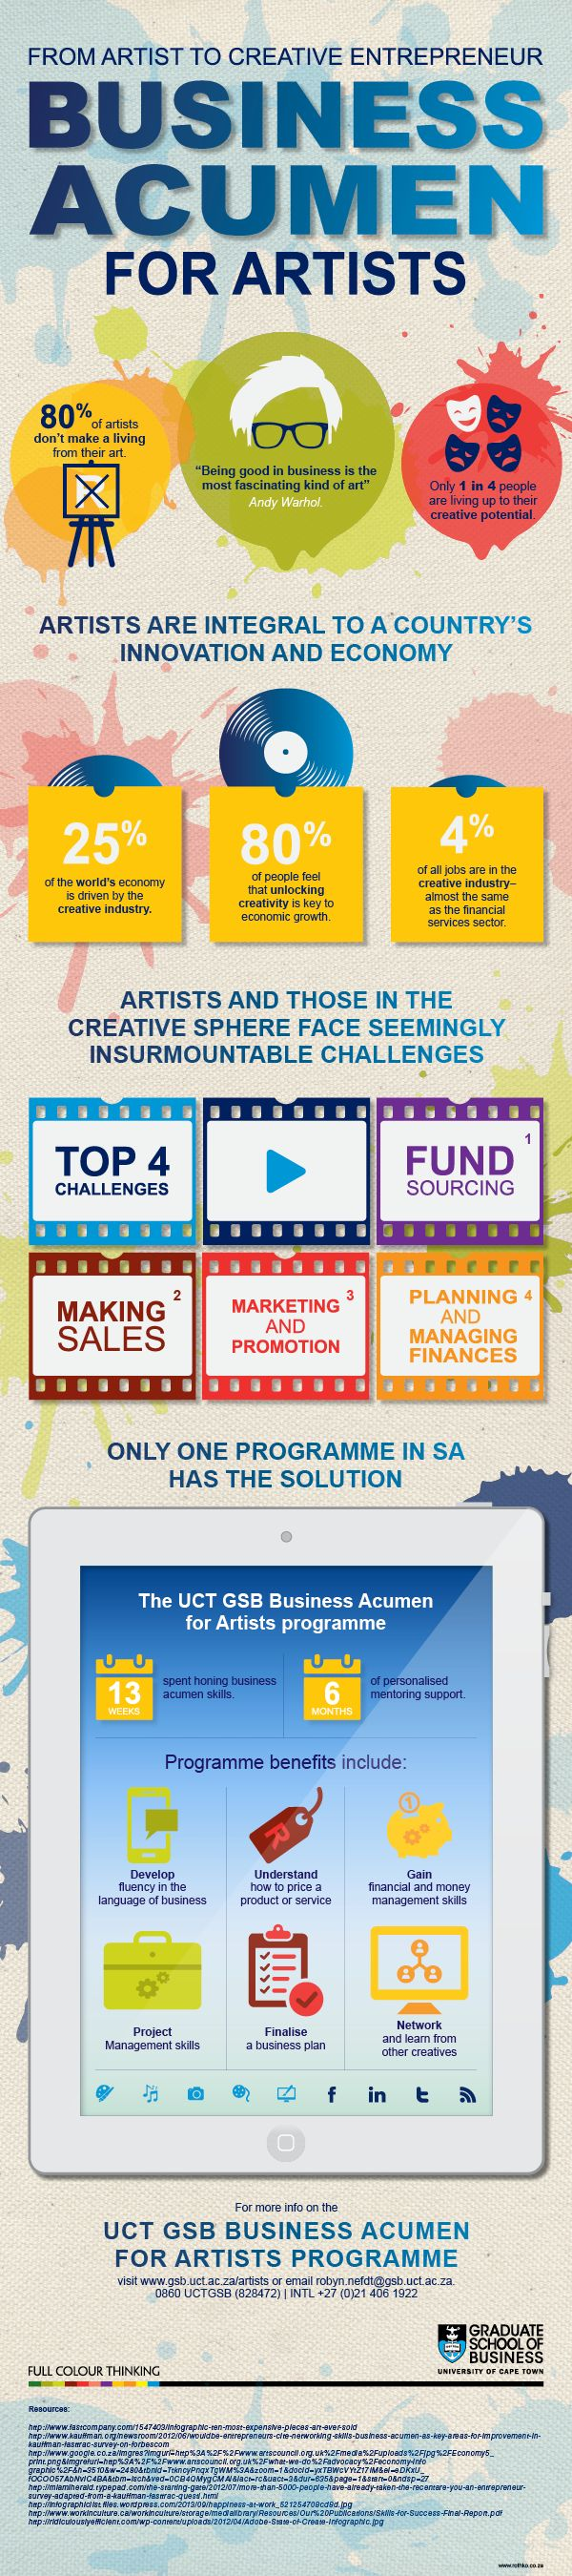 Business Acumen for Artists is a University of Cape Town Graduate School of Business programme which teaches artists everything they need to know about the basics of business: http://goo.gl/IXq7Lk